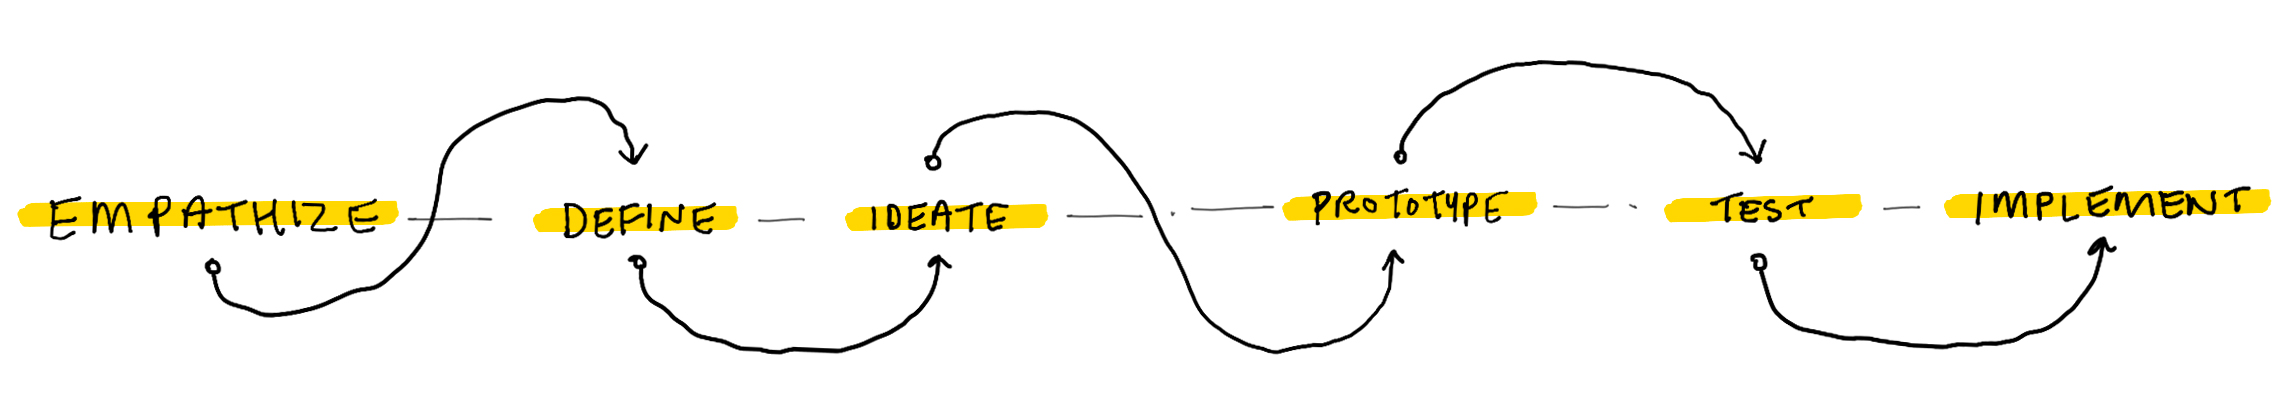 Design_process_diagram-alternate